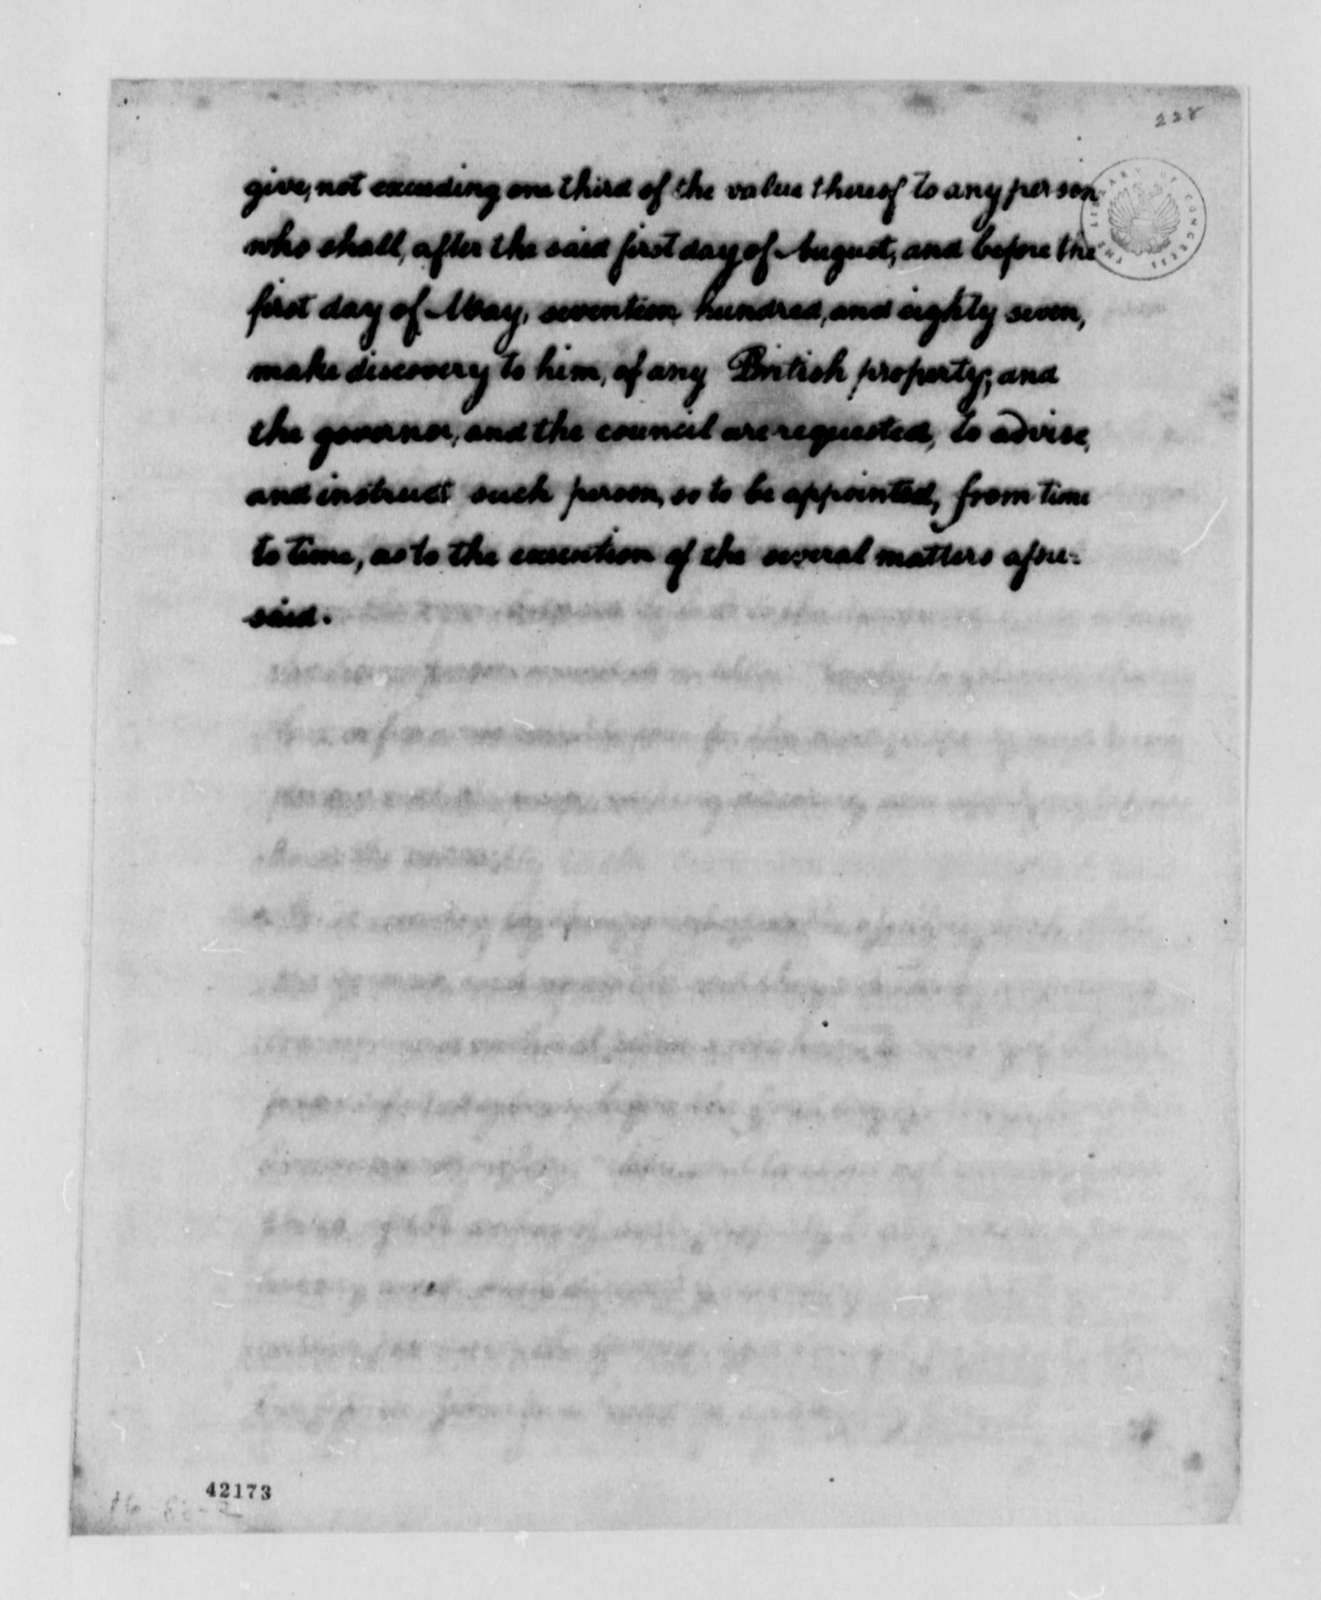 Maryland Laws and Statutes, 1788, Extract from Act on British Property